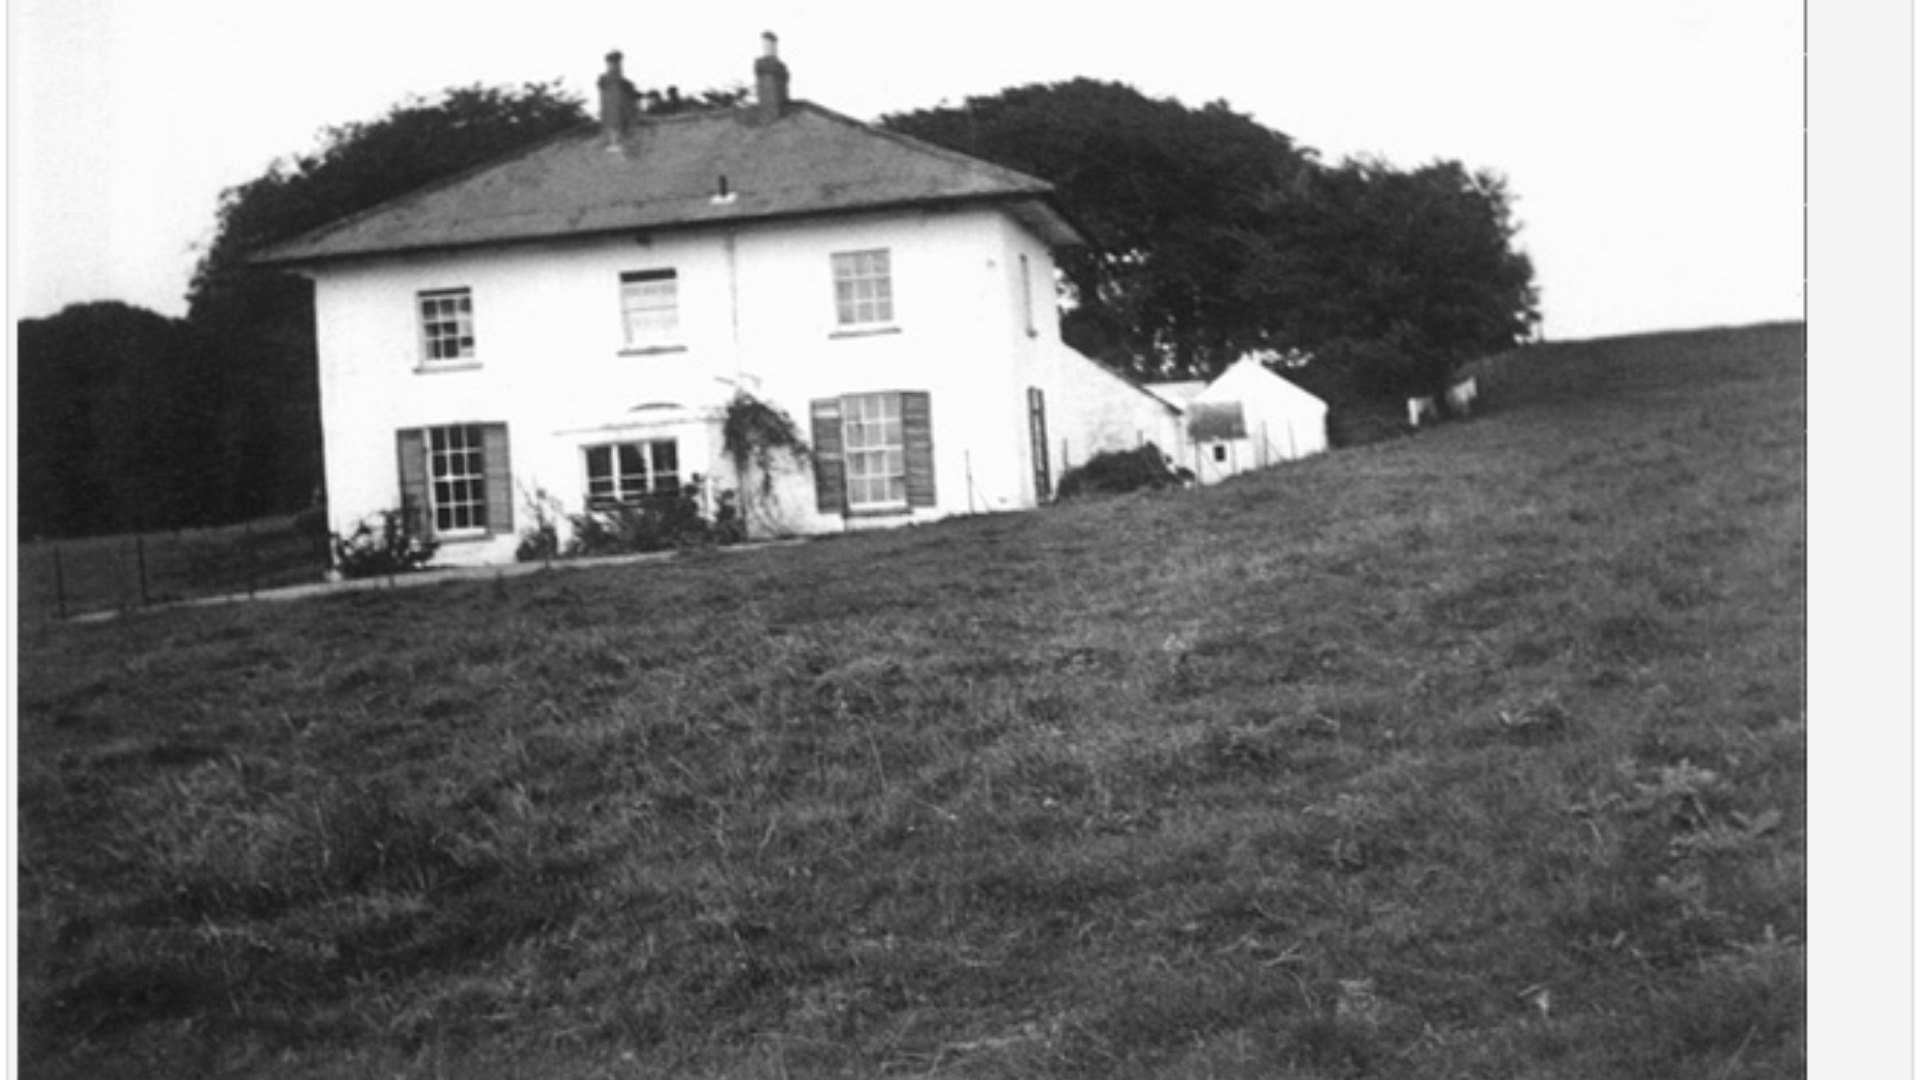 Toole Family Home in Ireland